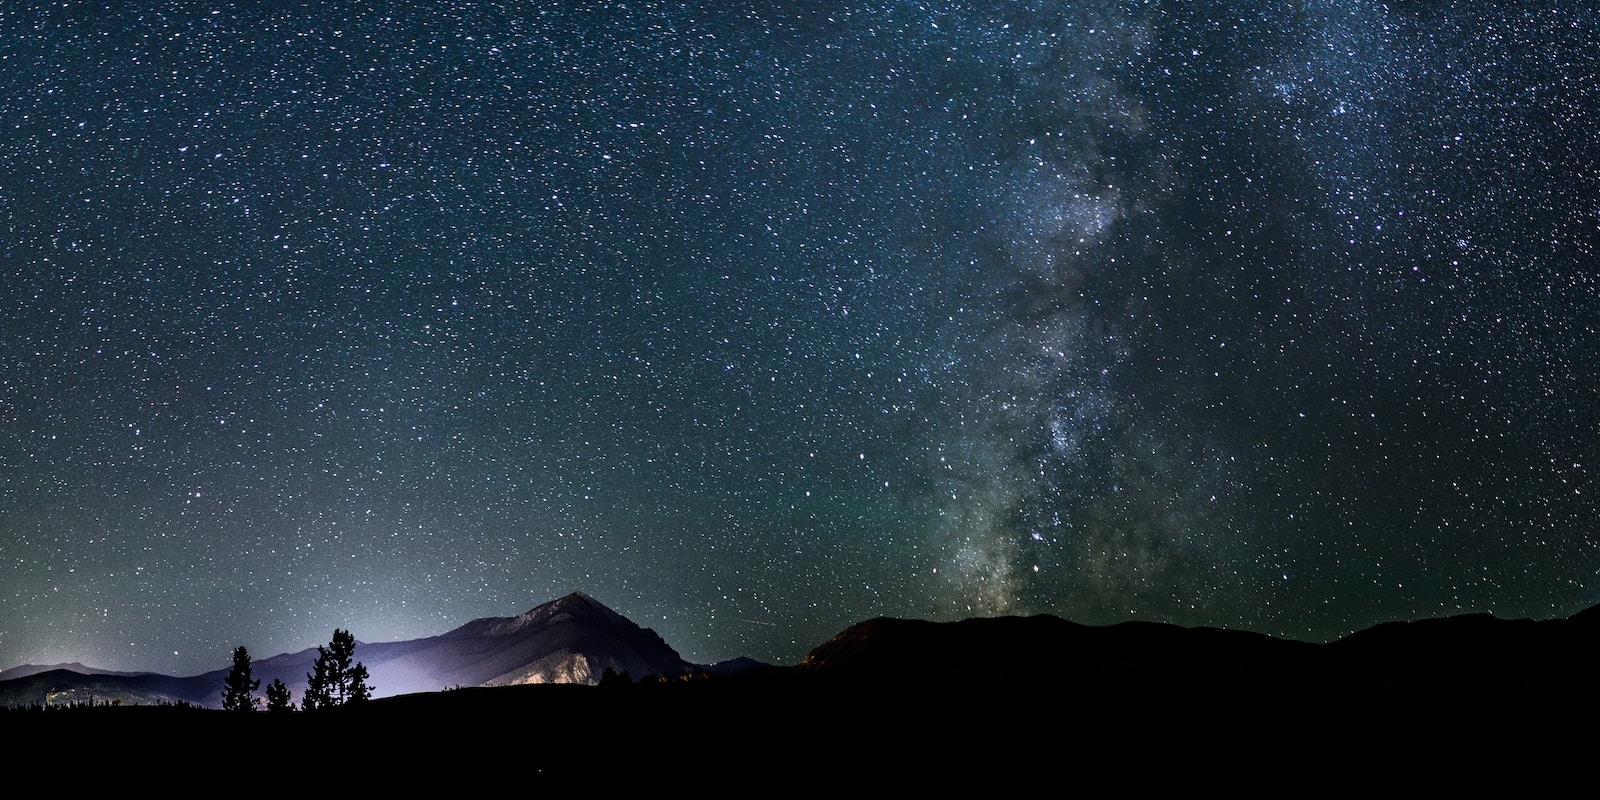 Silhouette photo of a mountain during nighttime, photo by Nathan Anderson on Unsplash.